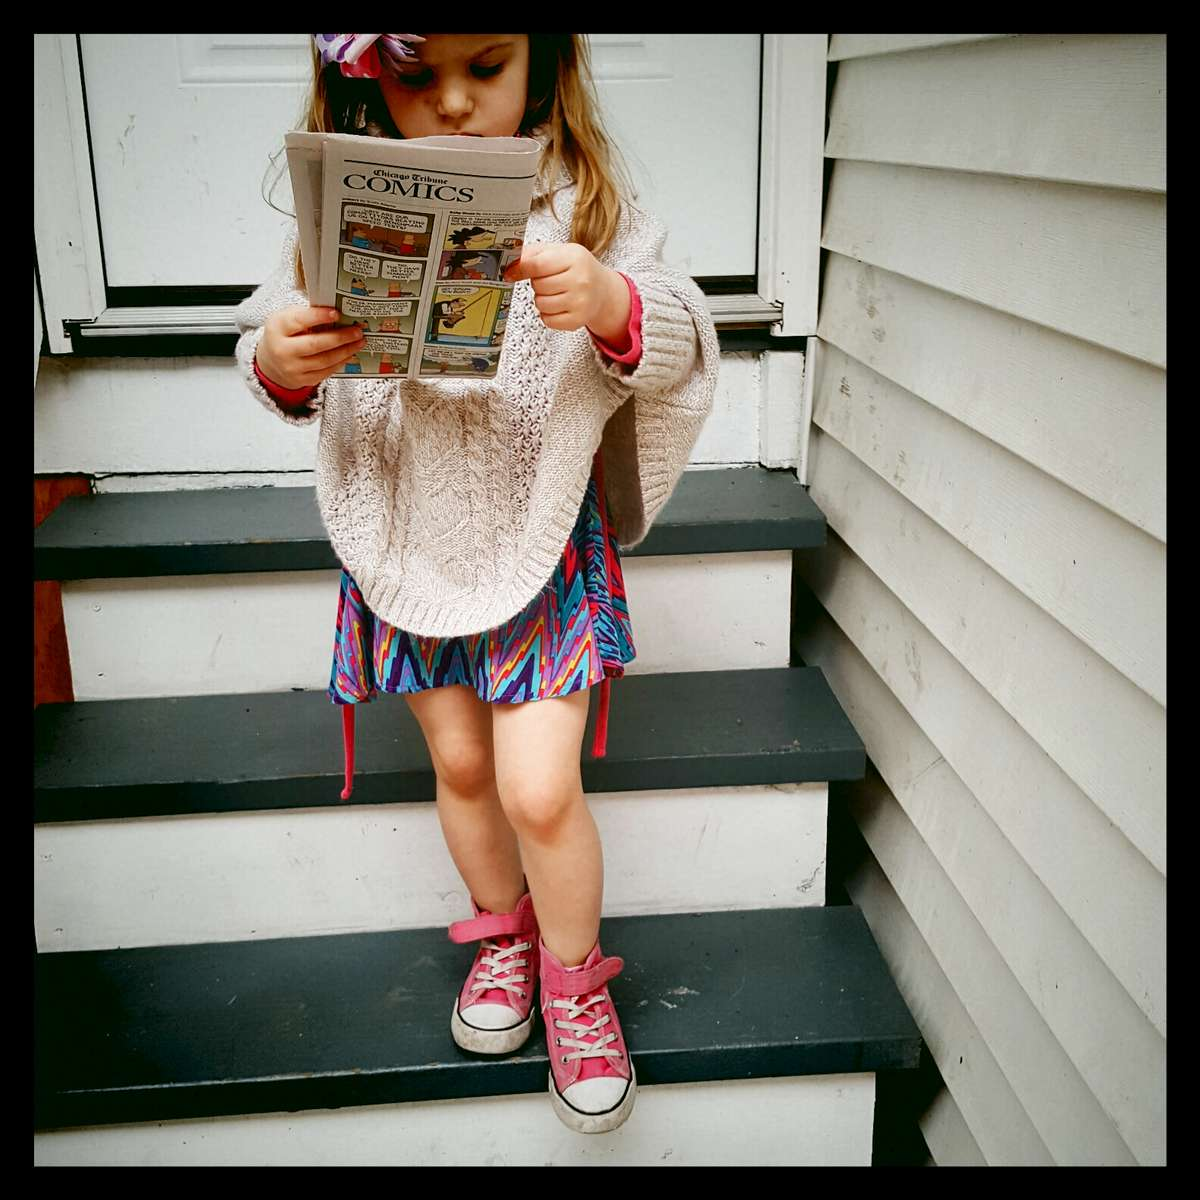 Rose trying to read the comics while slowly descending our stairs. April 2016.